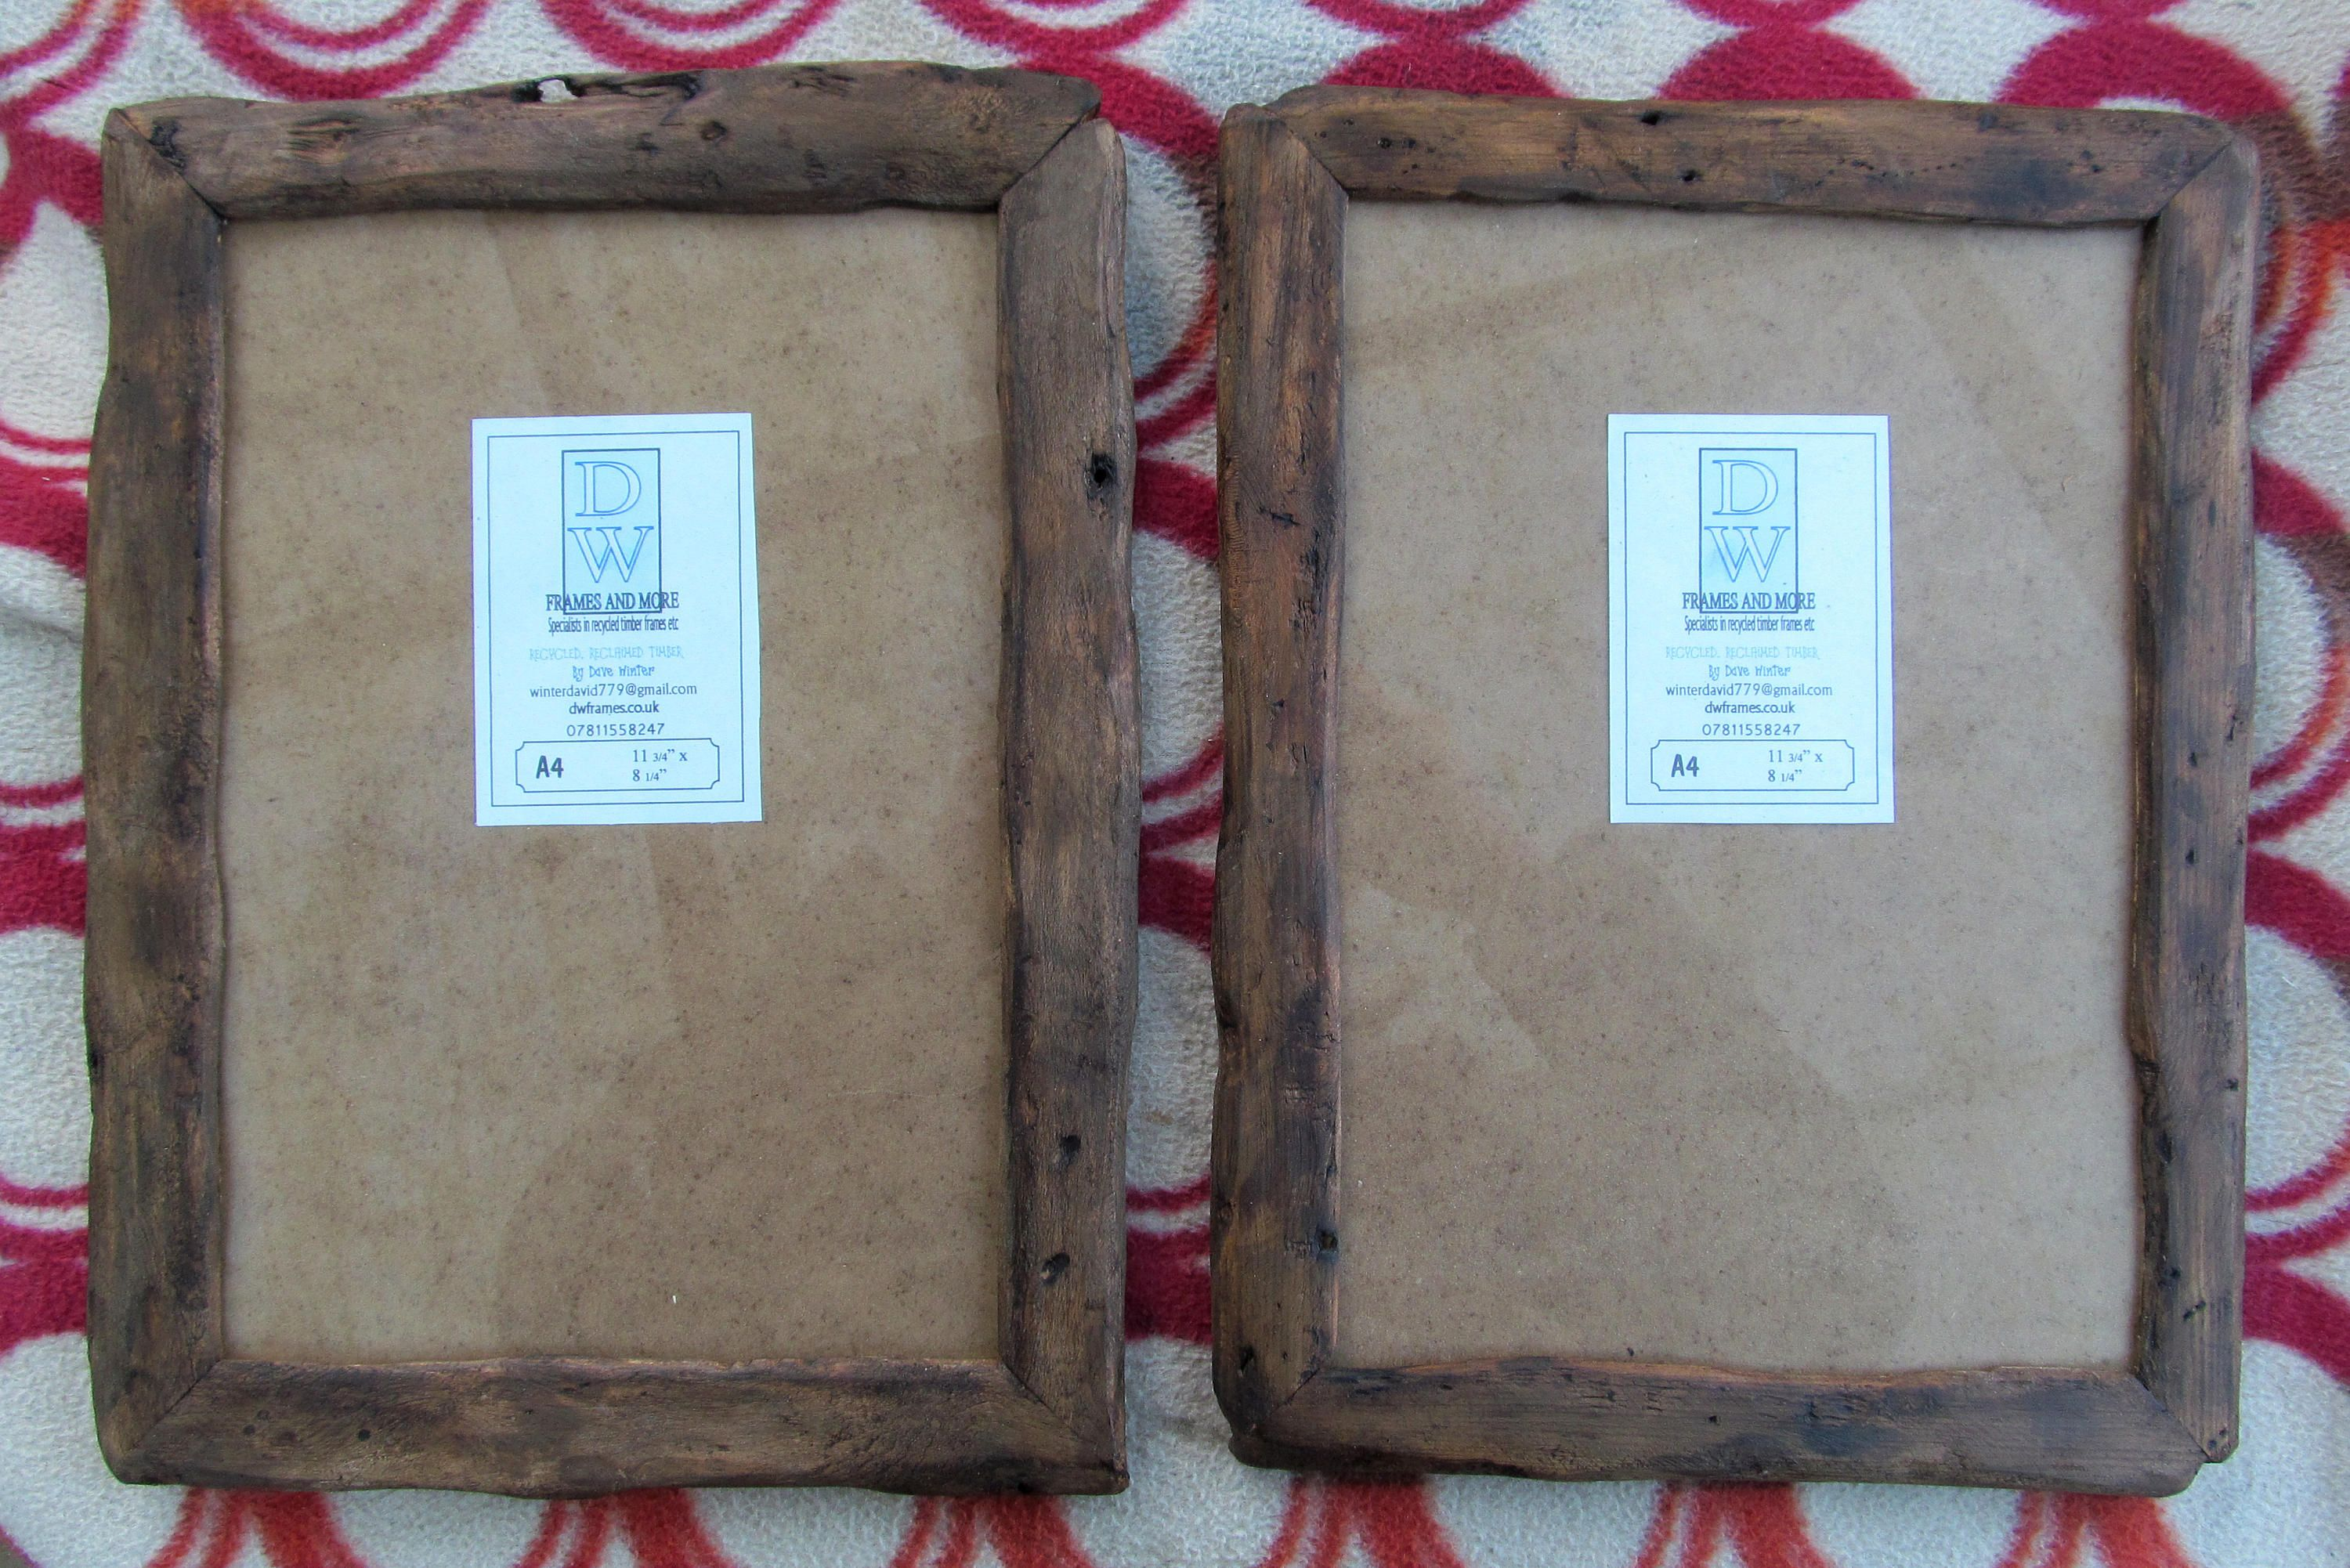 Rustic/driftwood style frames in locally sourced,recycled old wood ...